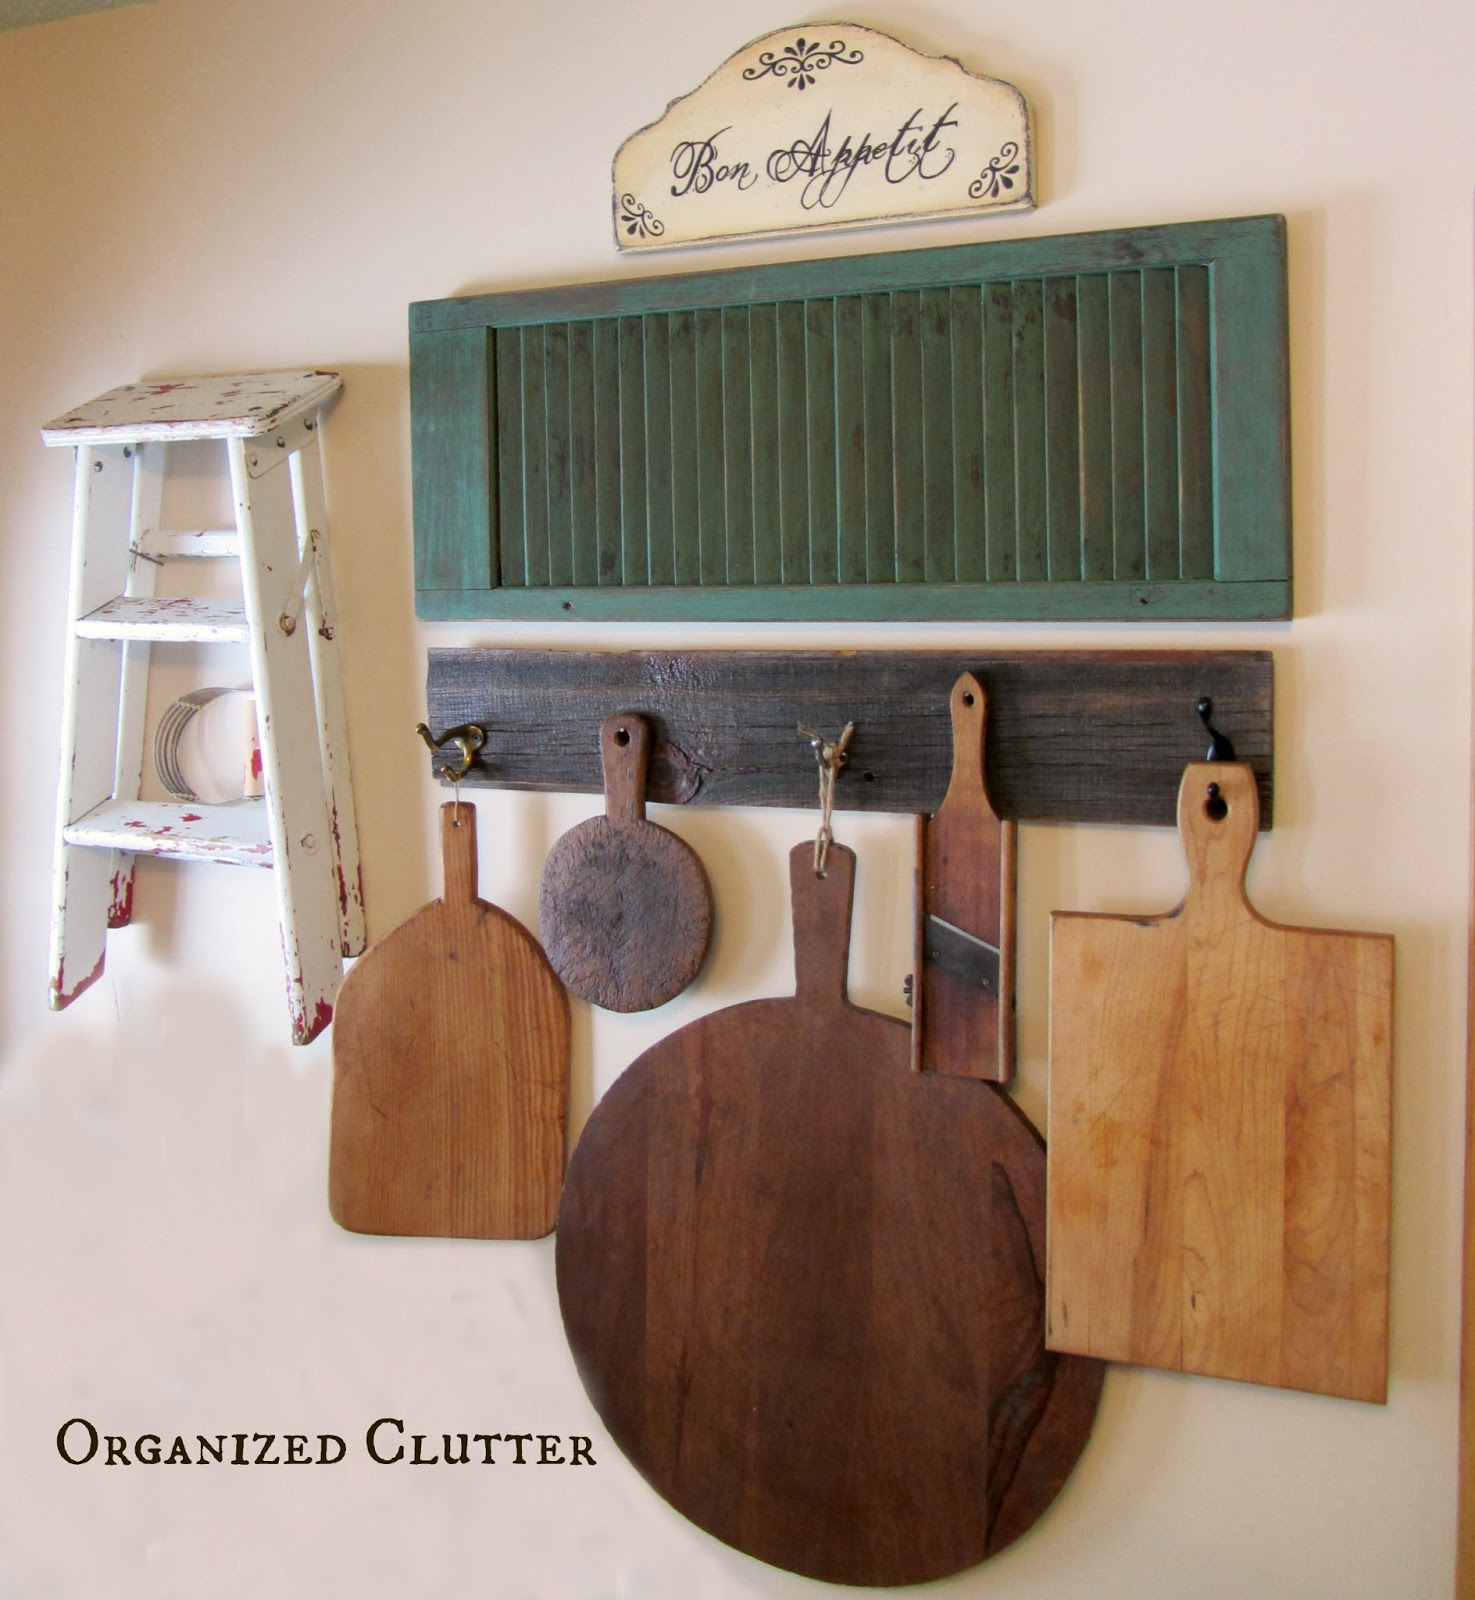 A New Kitchen Wall Display Organized Clutter